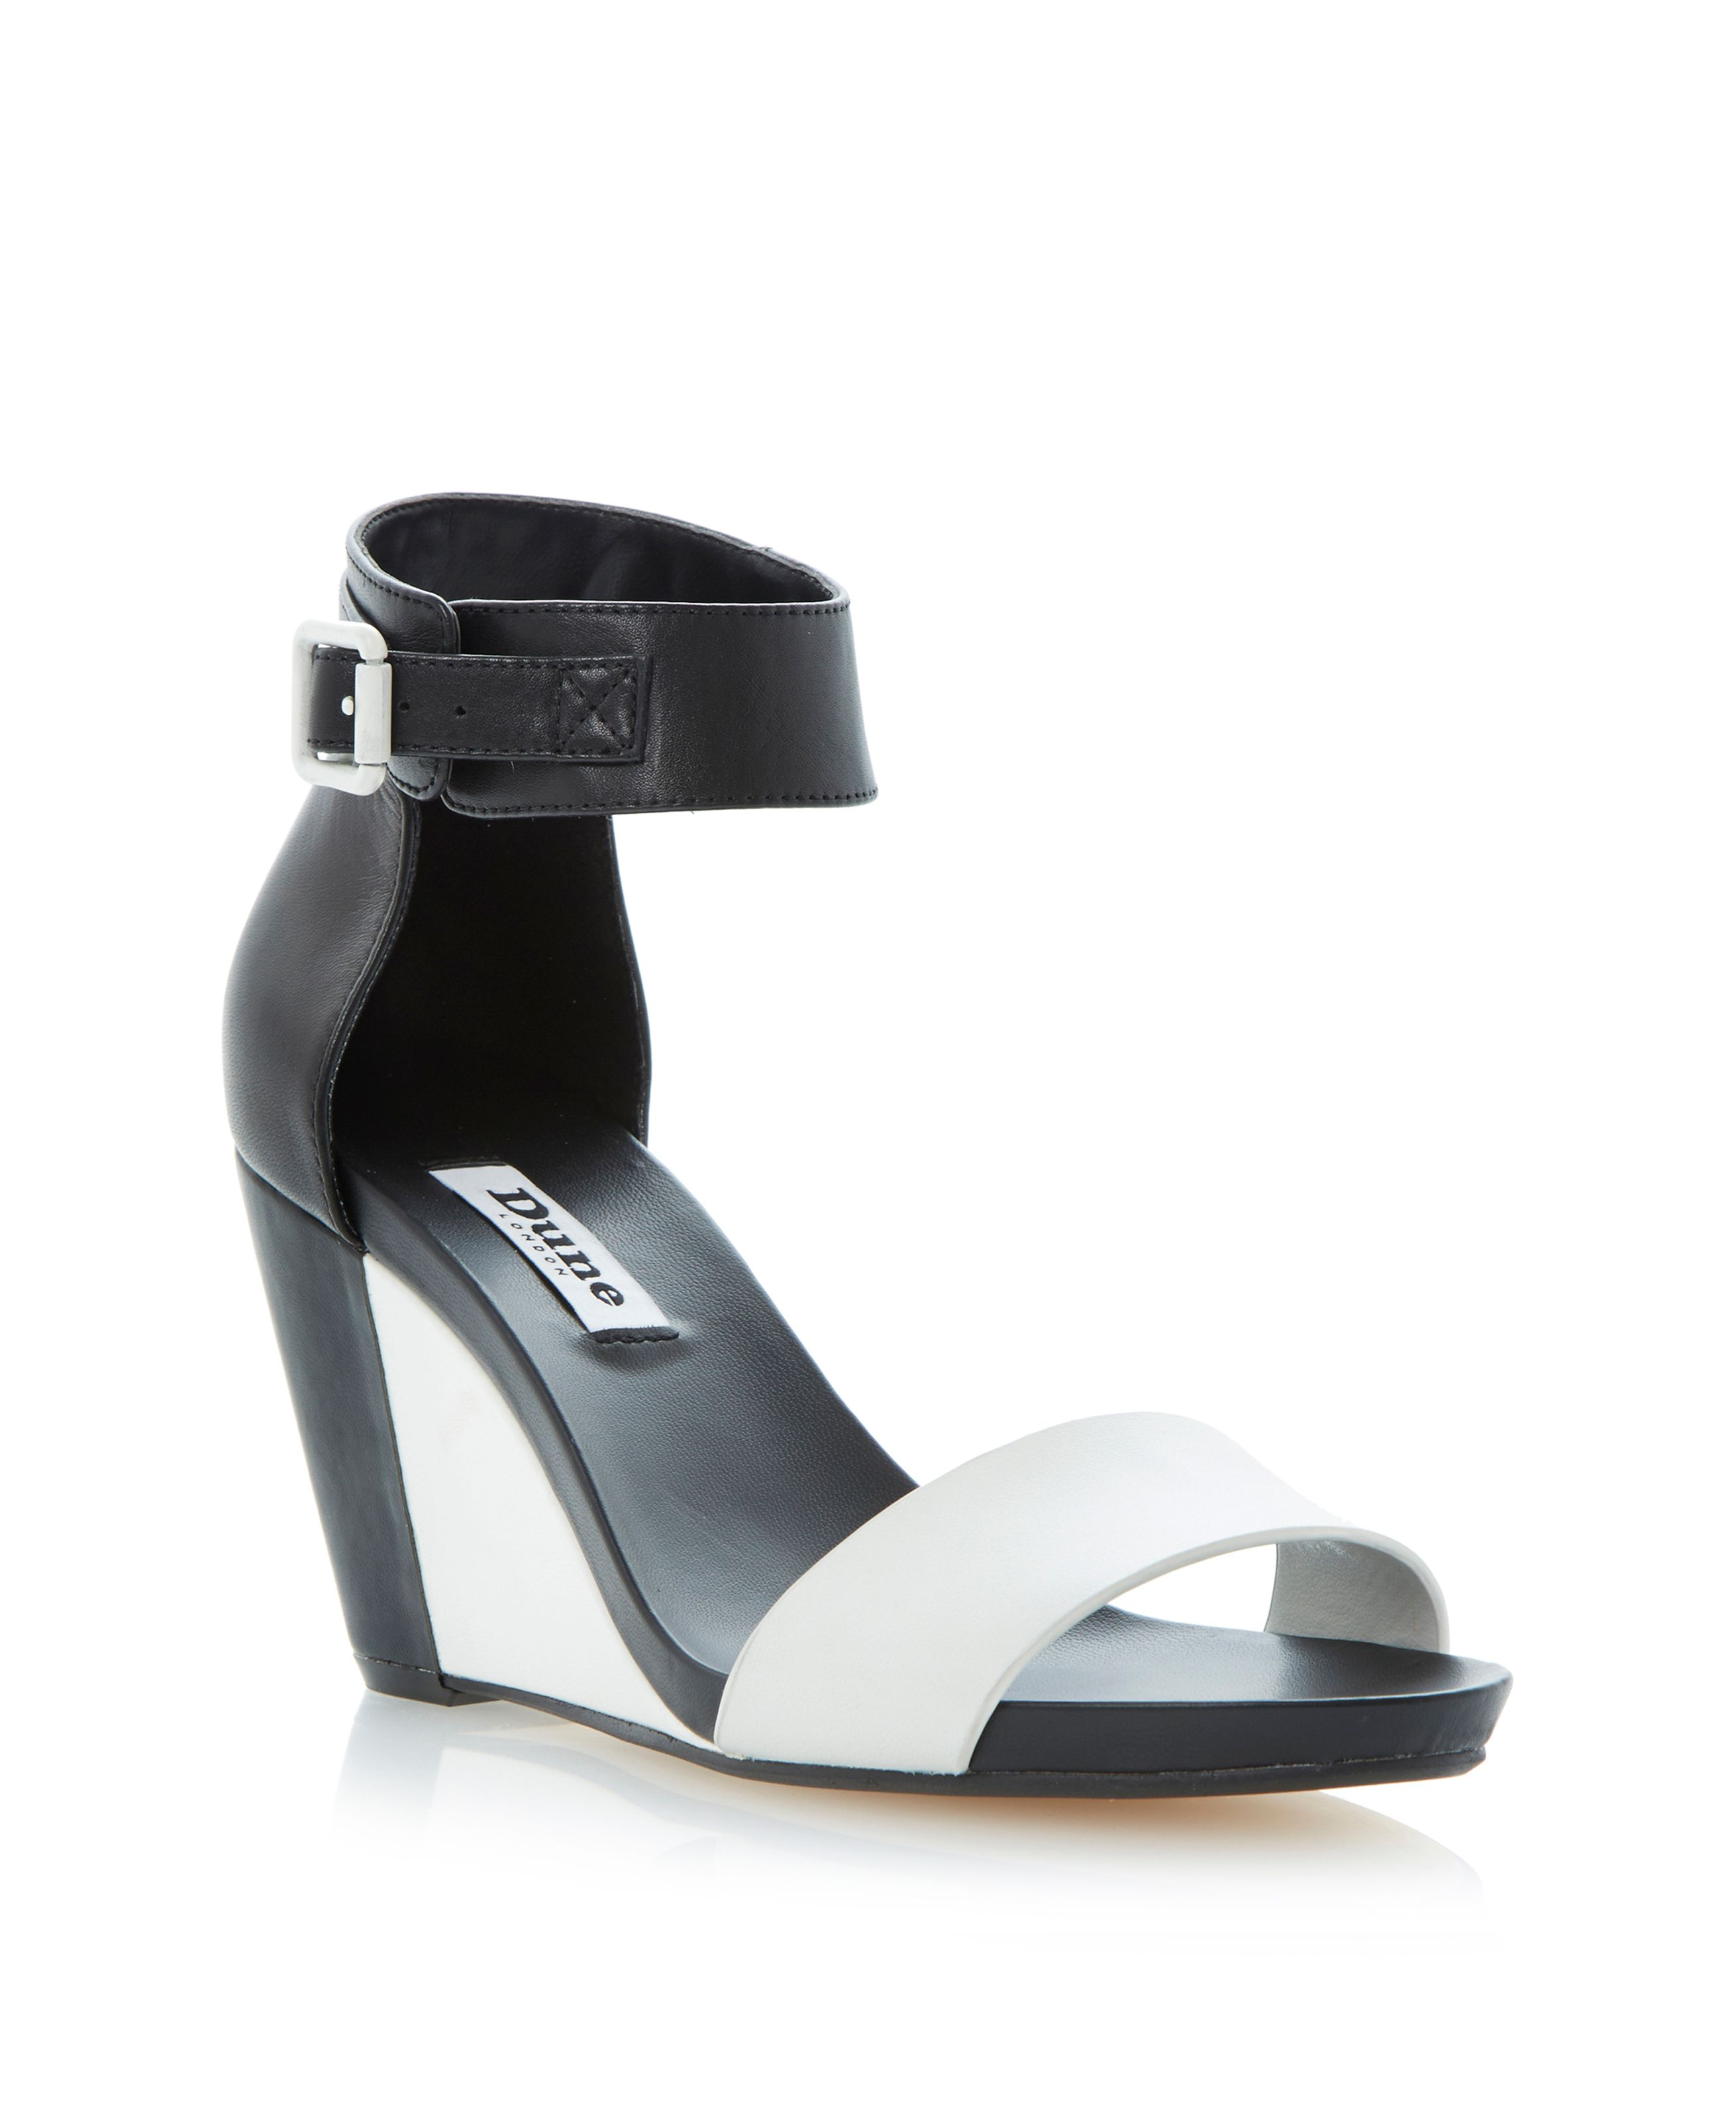 Grill leather wedge sandals